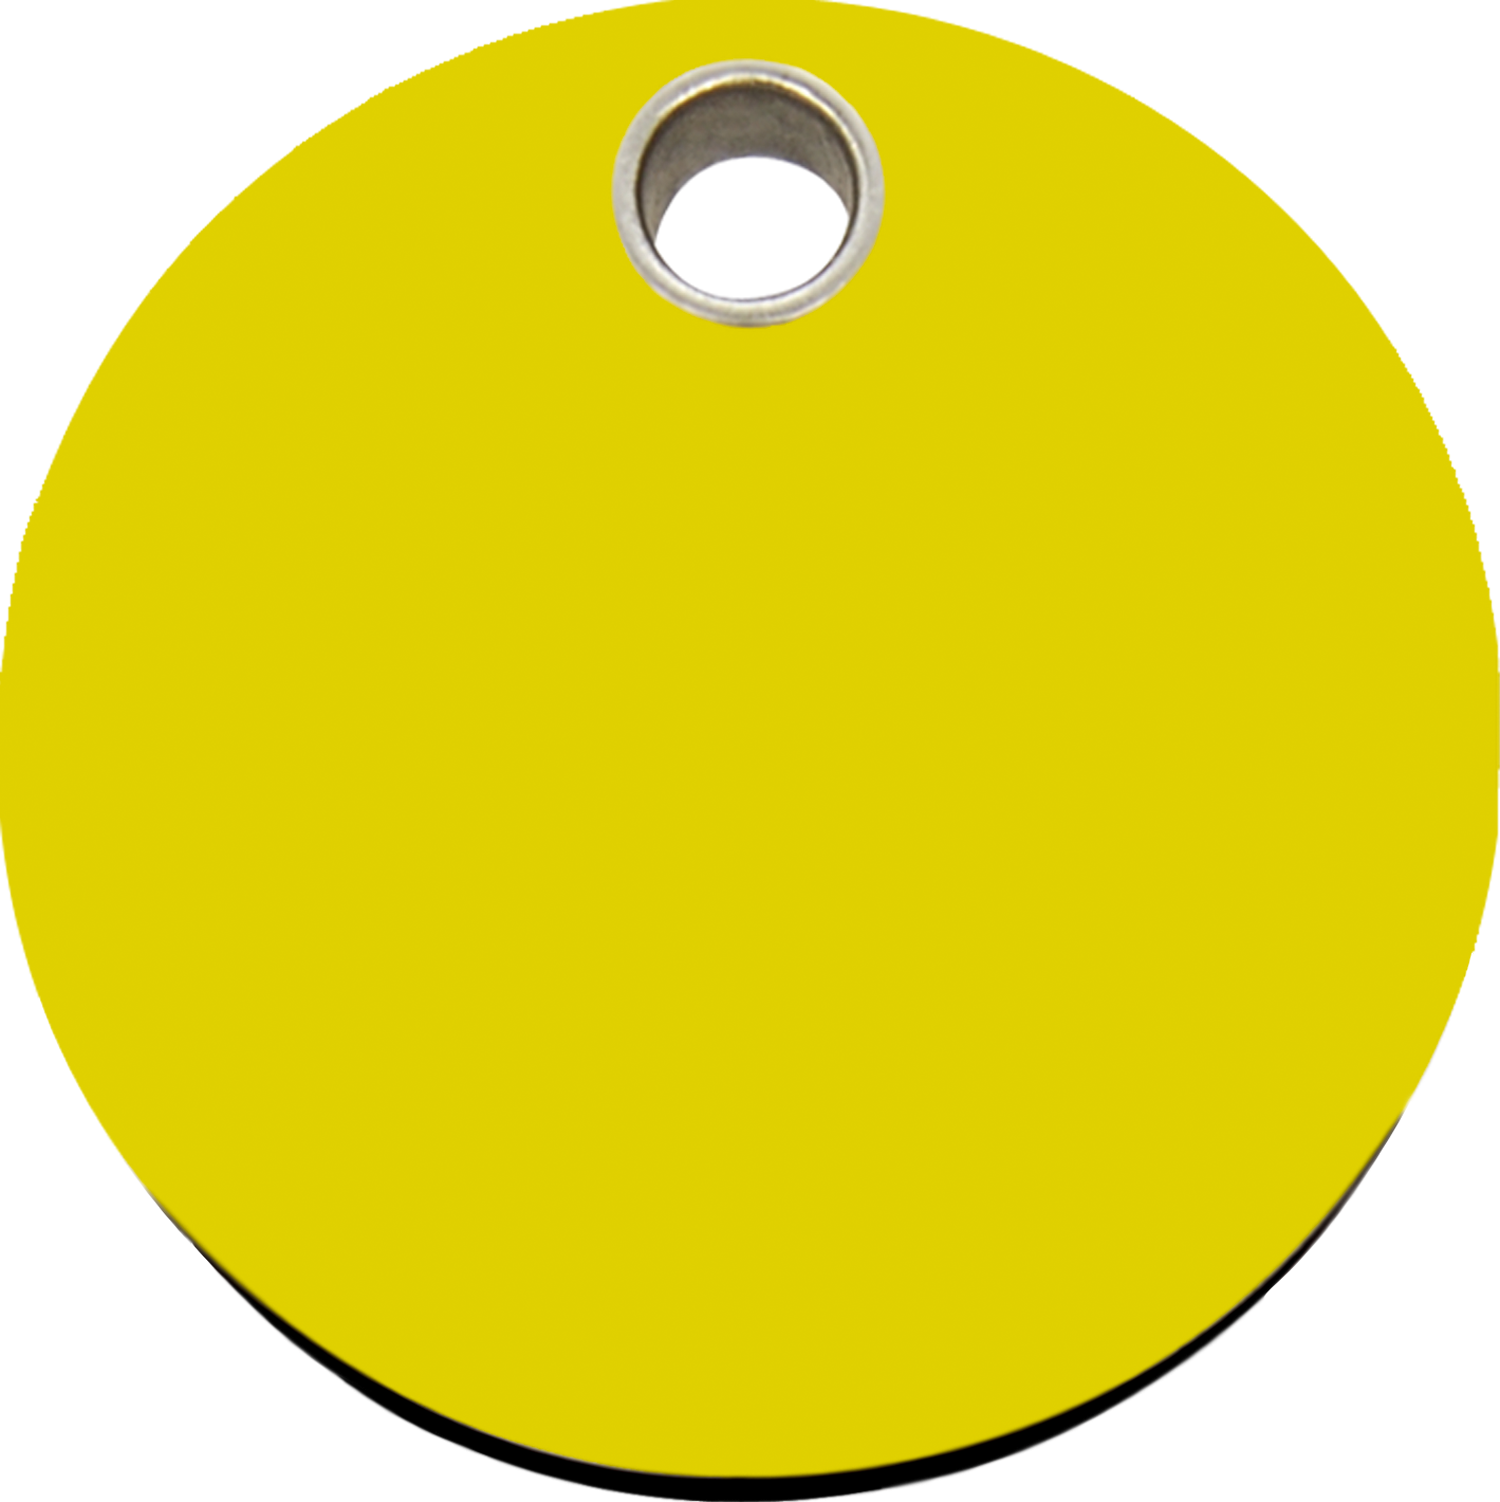 Red Dingo Plastic Tag Circle Yellow 04 CL YE (4CLYS / 4CLYM